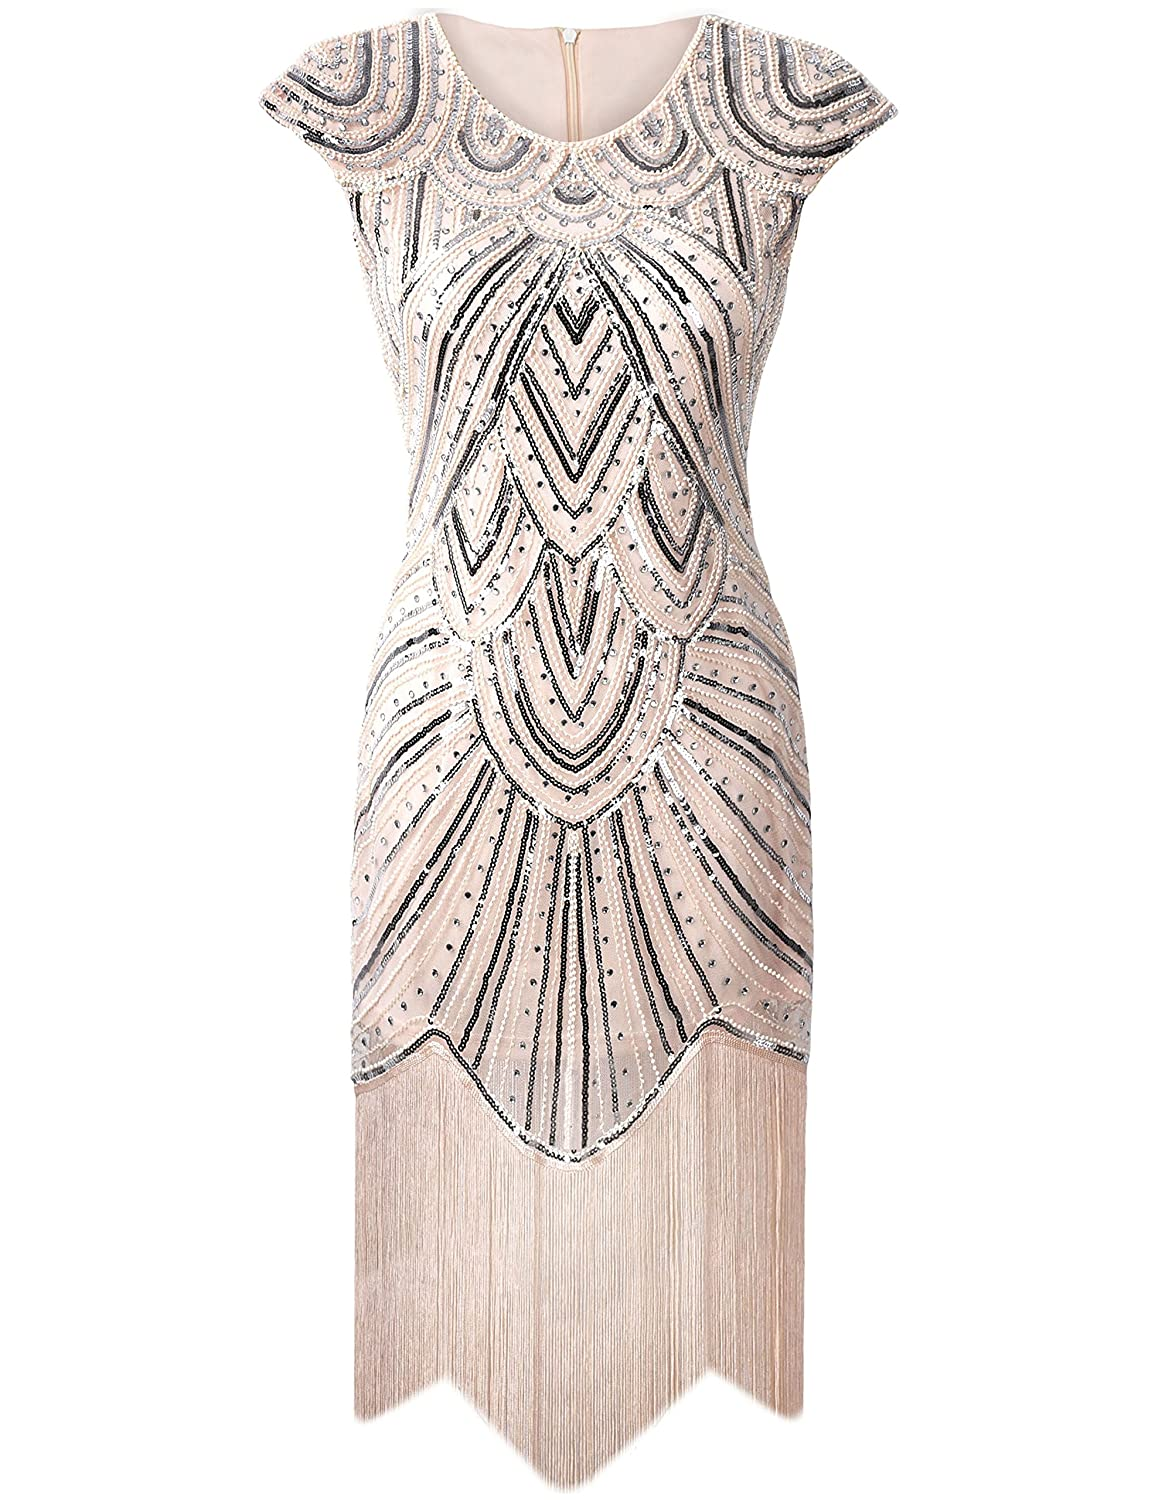 Buy Boardwalk Empire Inspired Dresses  1920s Gastby Diamond Sequined Embellished Fringed Flapper Dress £40.99 AT vintagedancer.com